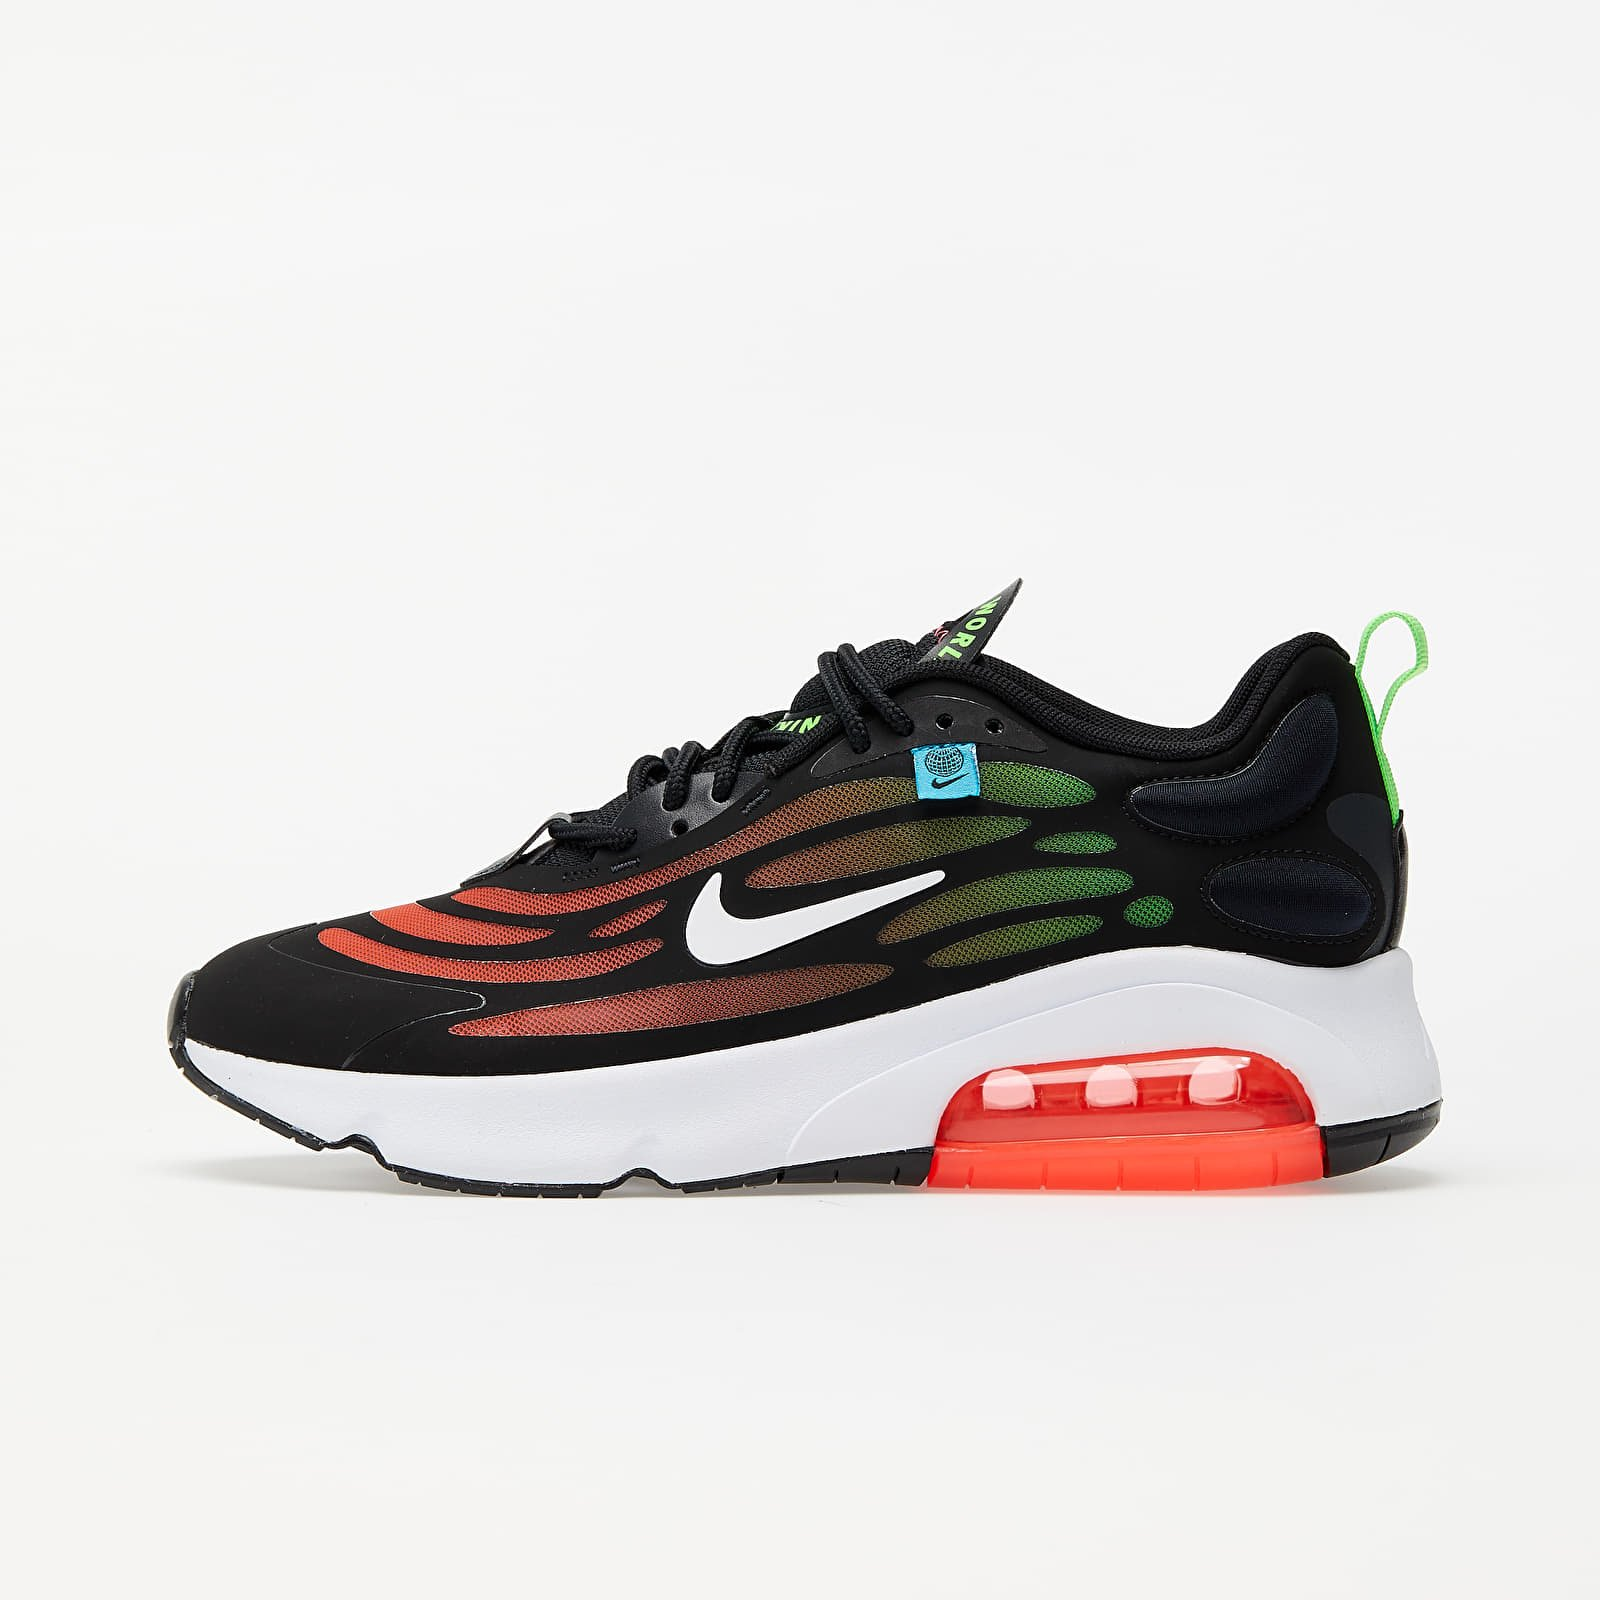 Nike Air Max Exosense SE Black/ White-Flash Crimson-Green Strike EUR 41